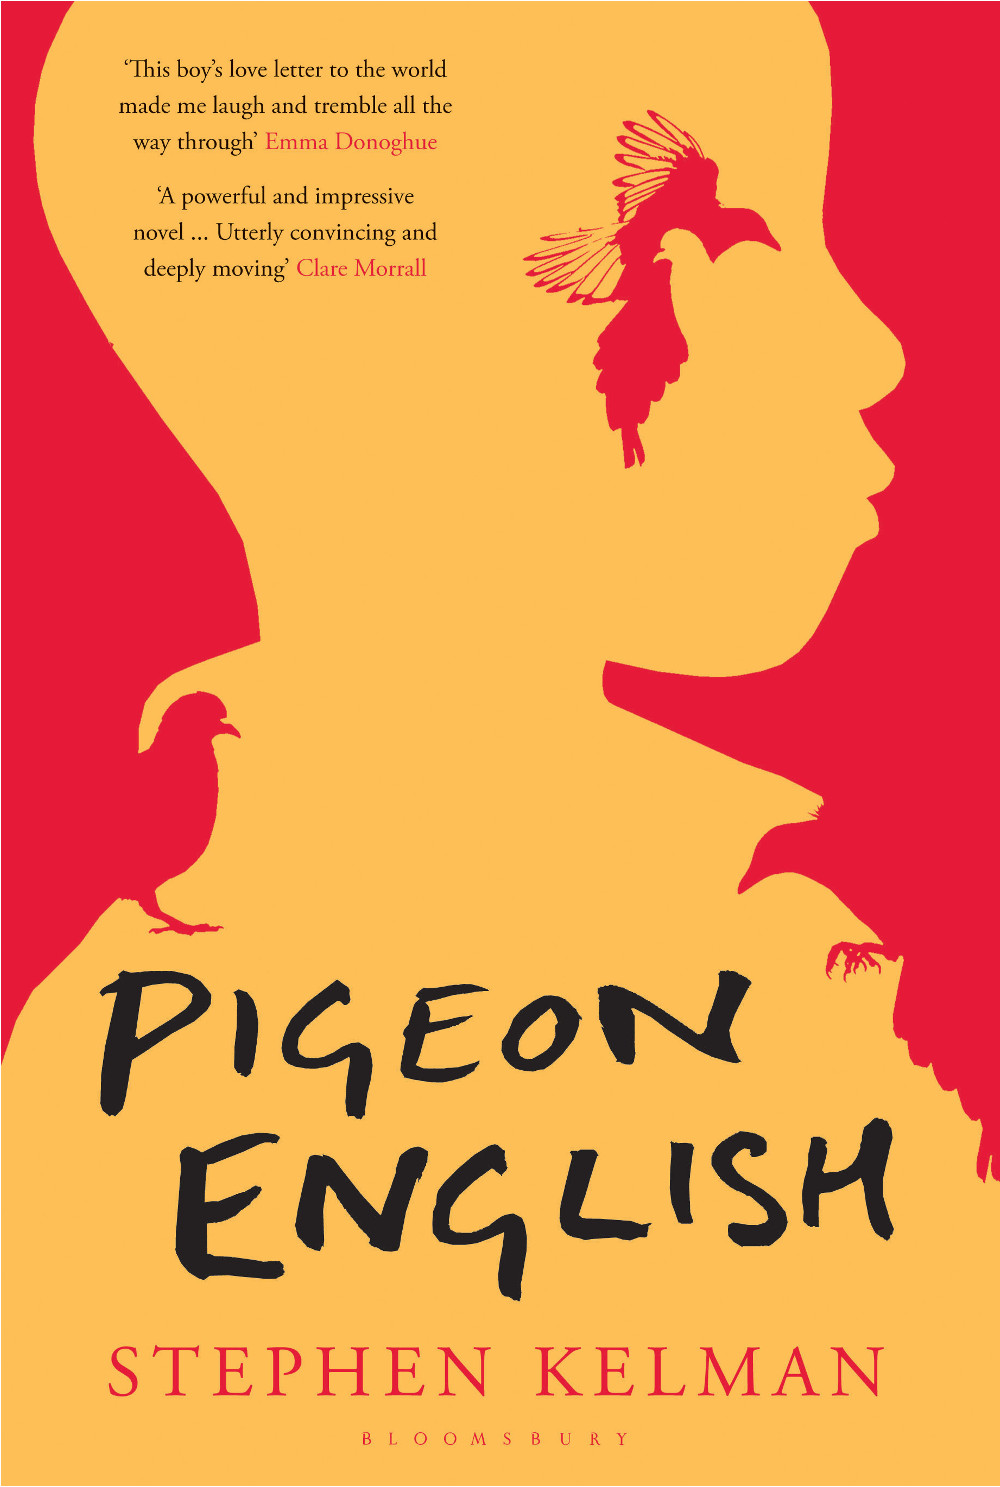 Pigeon English by Stephen Kelman Double-Barrelled Travel